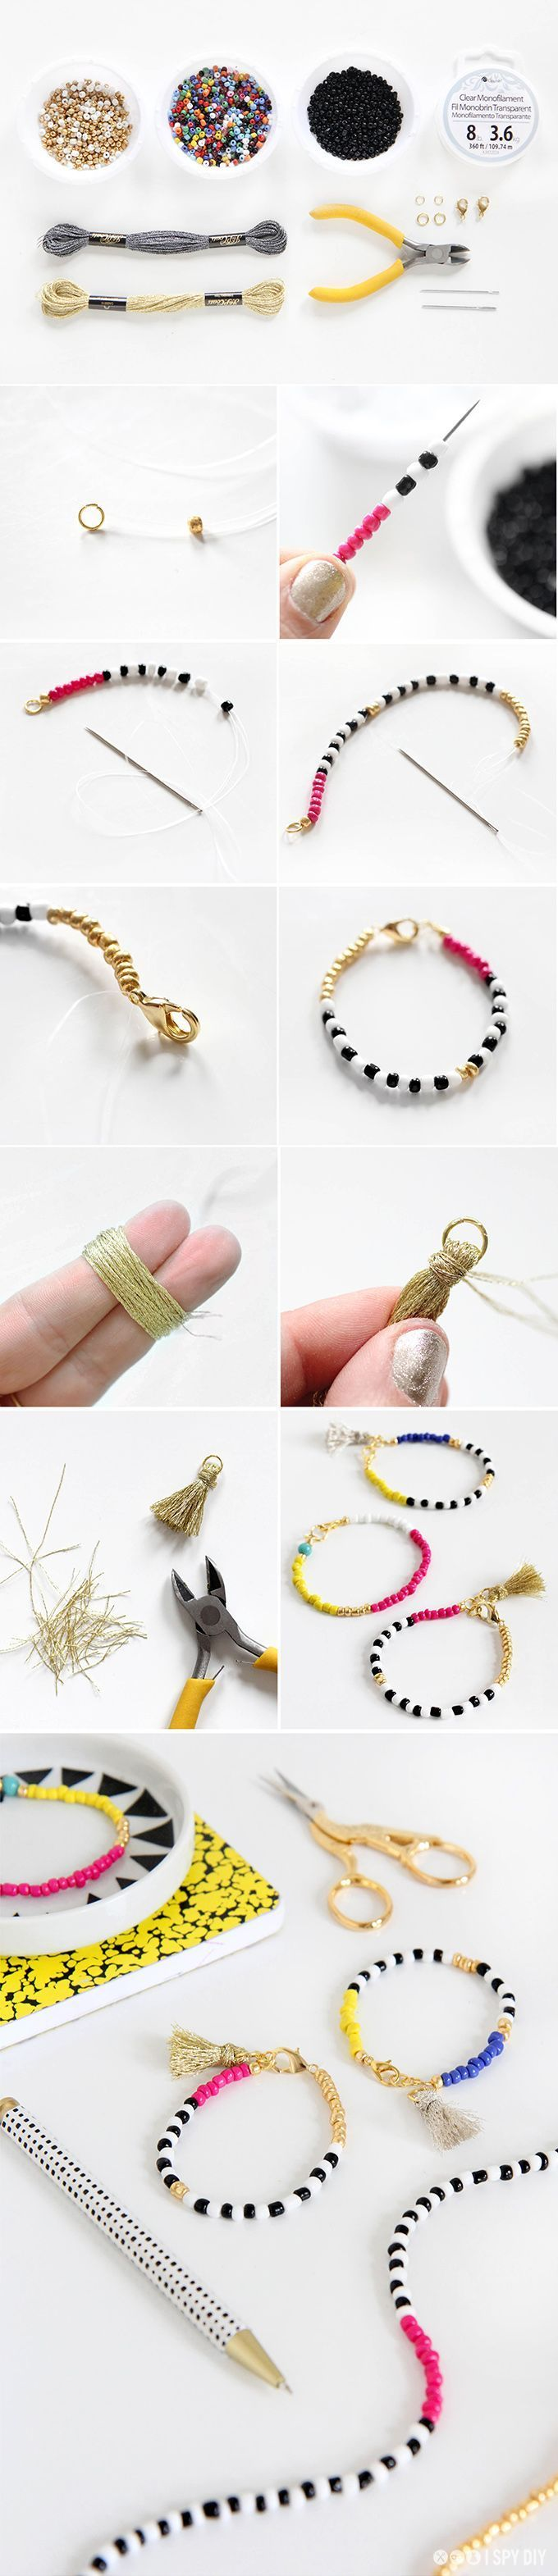 Photo of MEIN DIY | Perlen Quaste Schmuck (I Spy DIY)